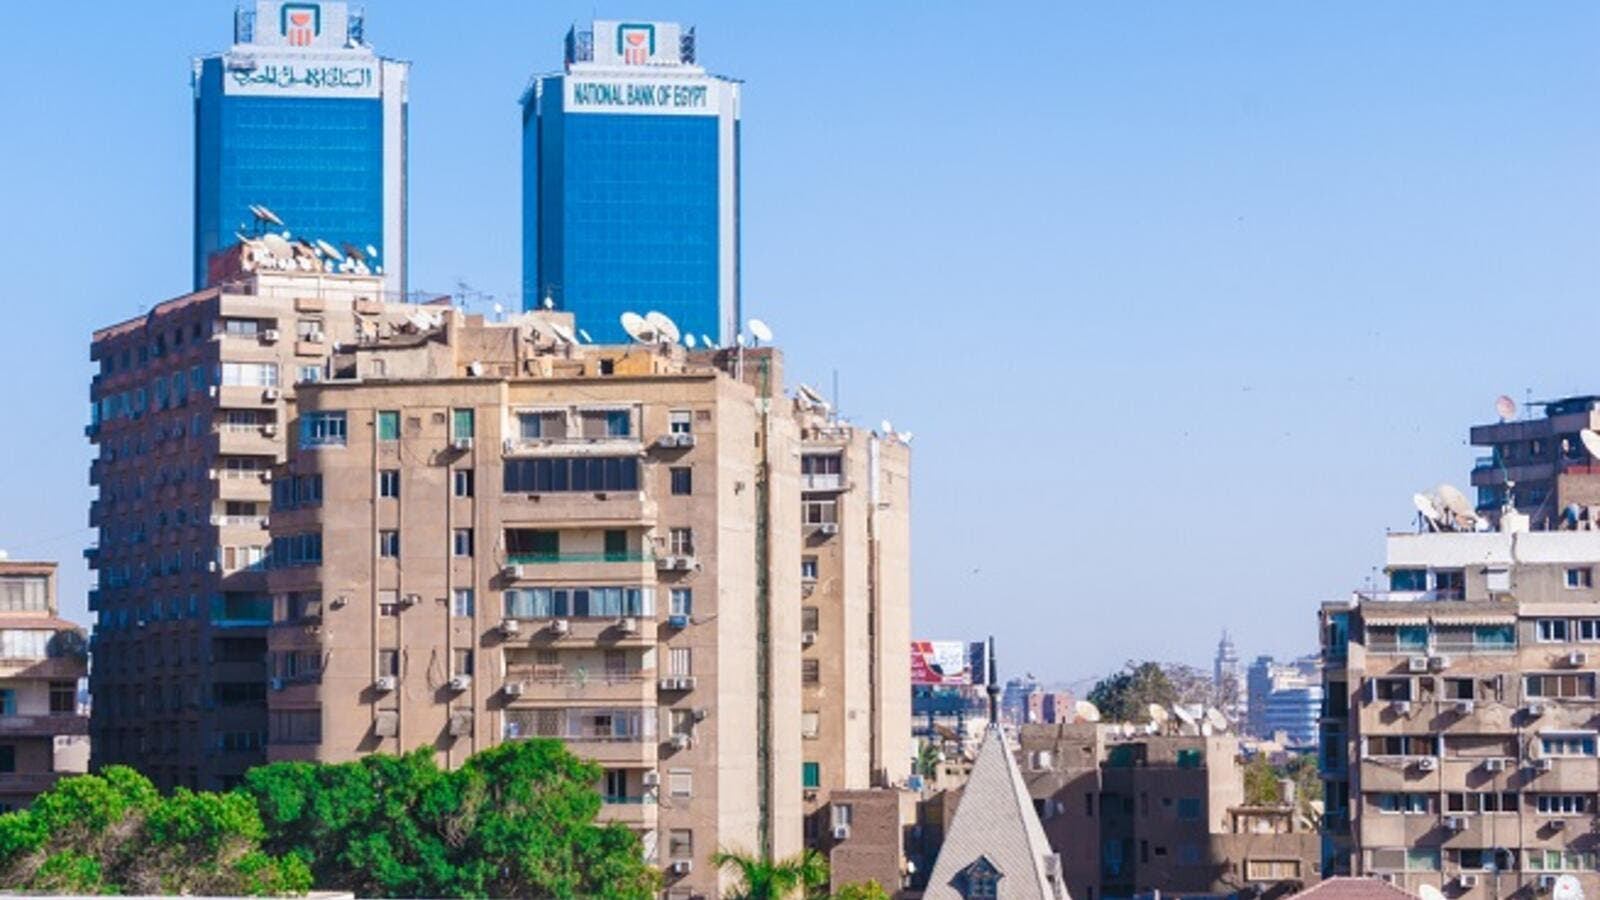 A new report shows that Egypt, Angola, Nigeria, South Africa, and Morocco, account for 68 percent of Africa's total banking revenue pool. (Shutterstock)